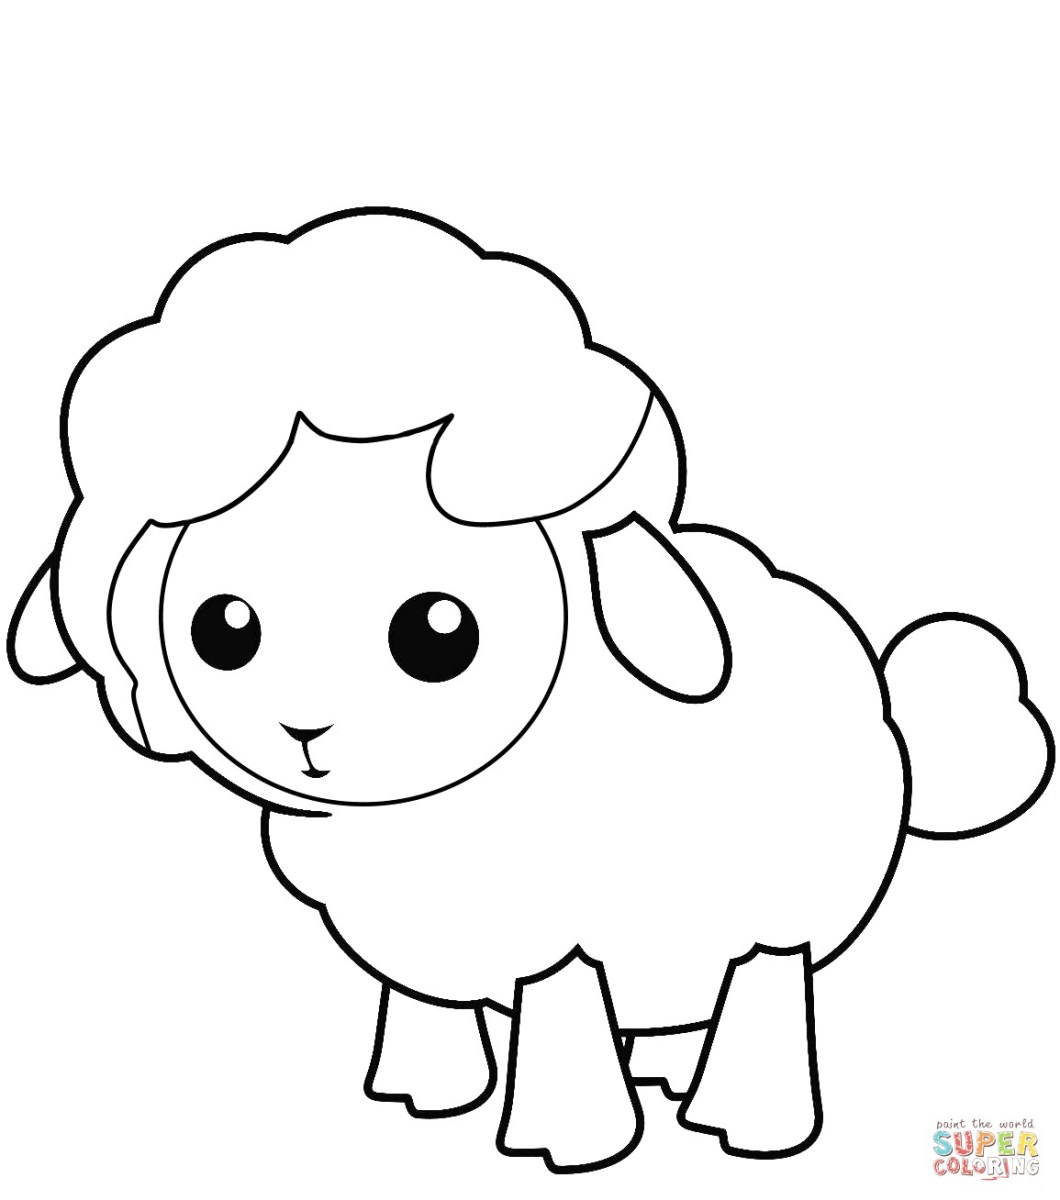 Sheep Coloring Page Cute Little Lamb Coloring Page Pages Thanhhoacar